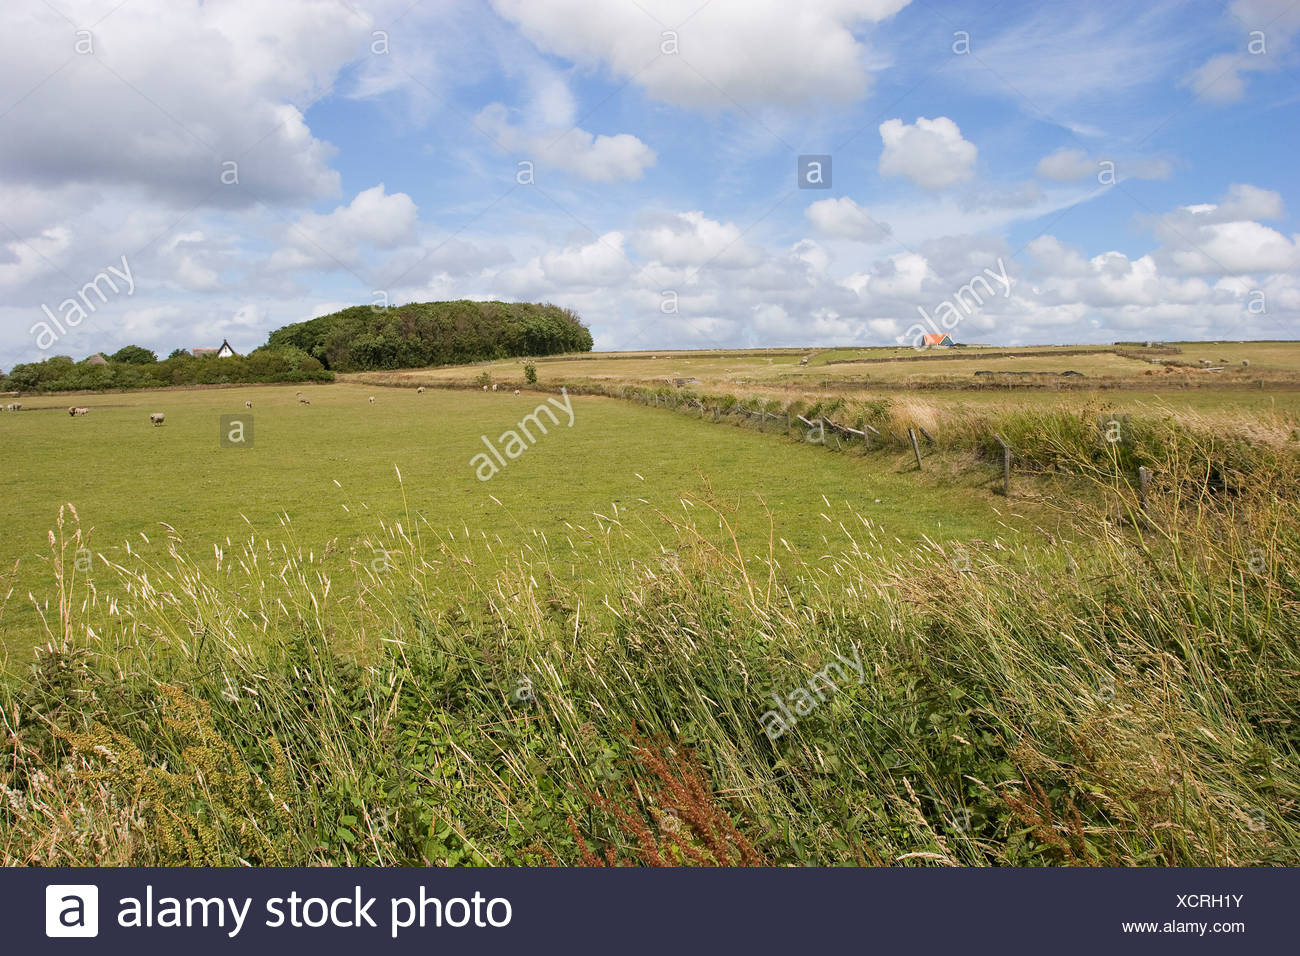 The 'hoge berg' at Texel has many natural fences made by sods. - Stock Image